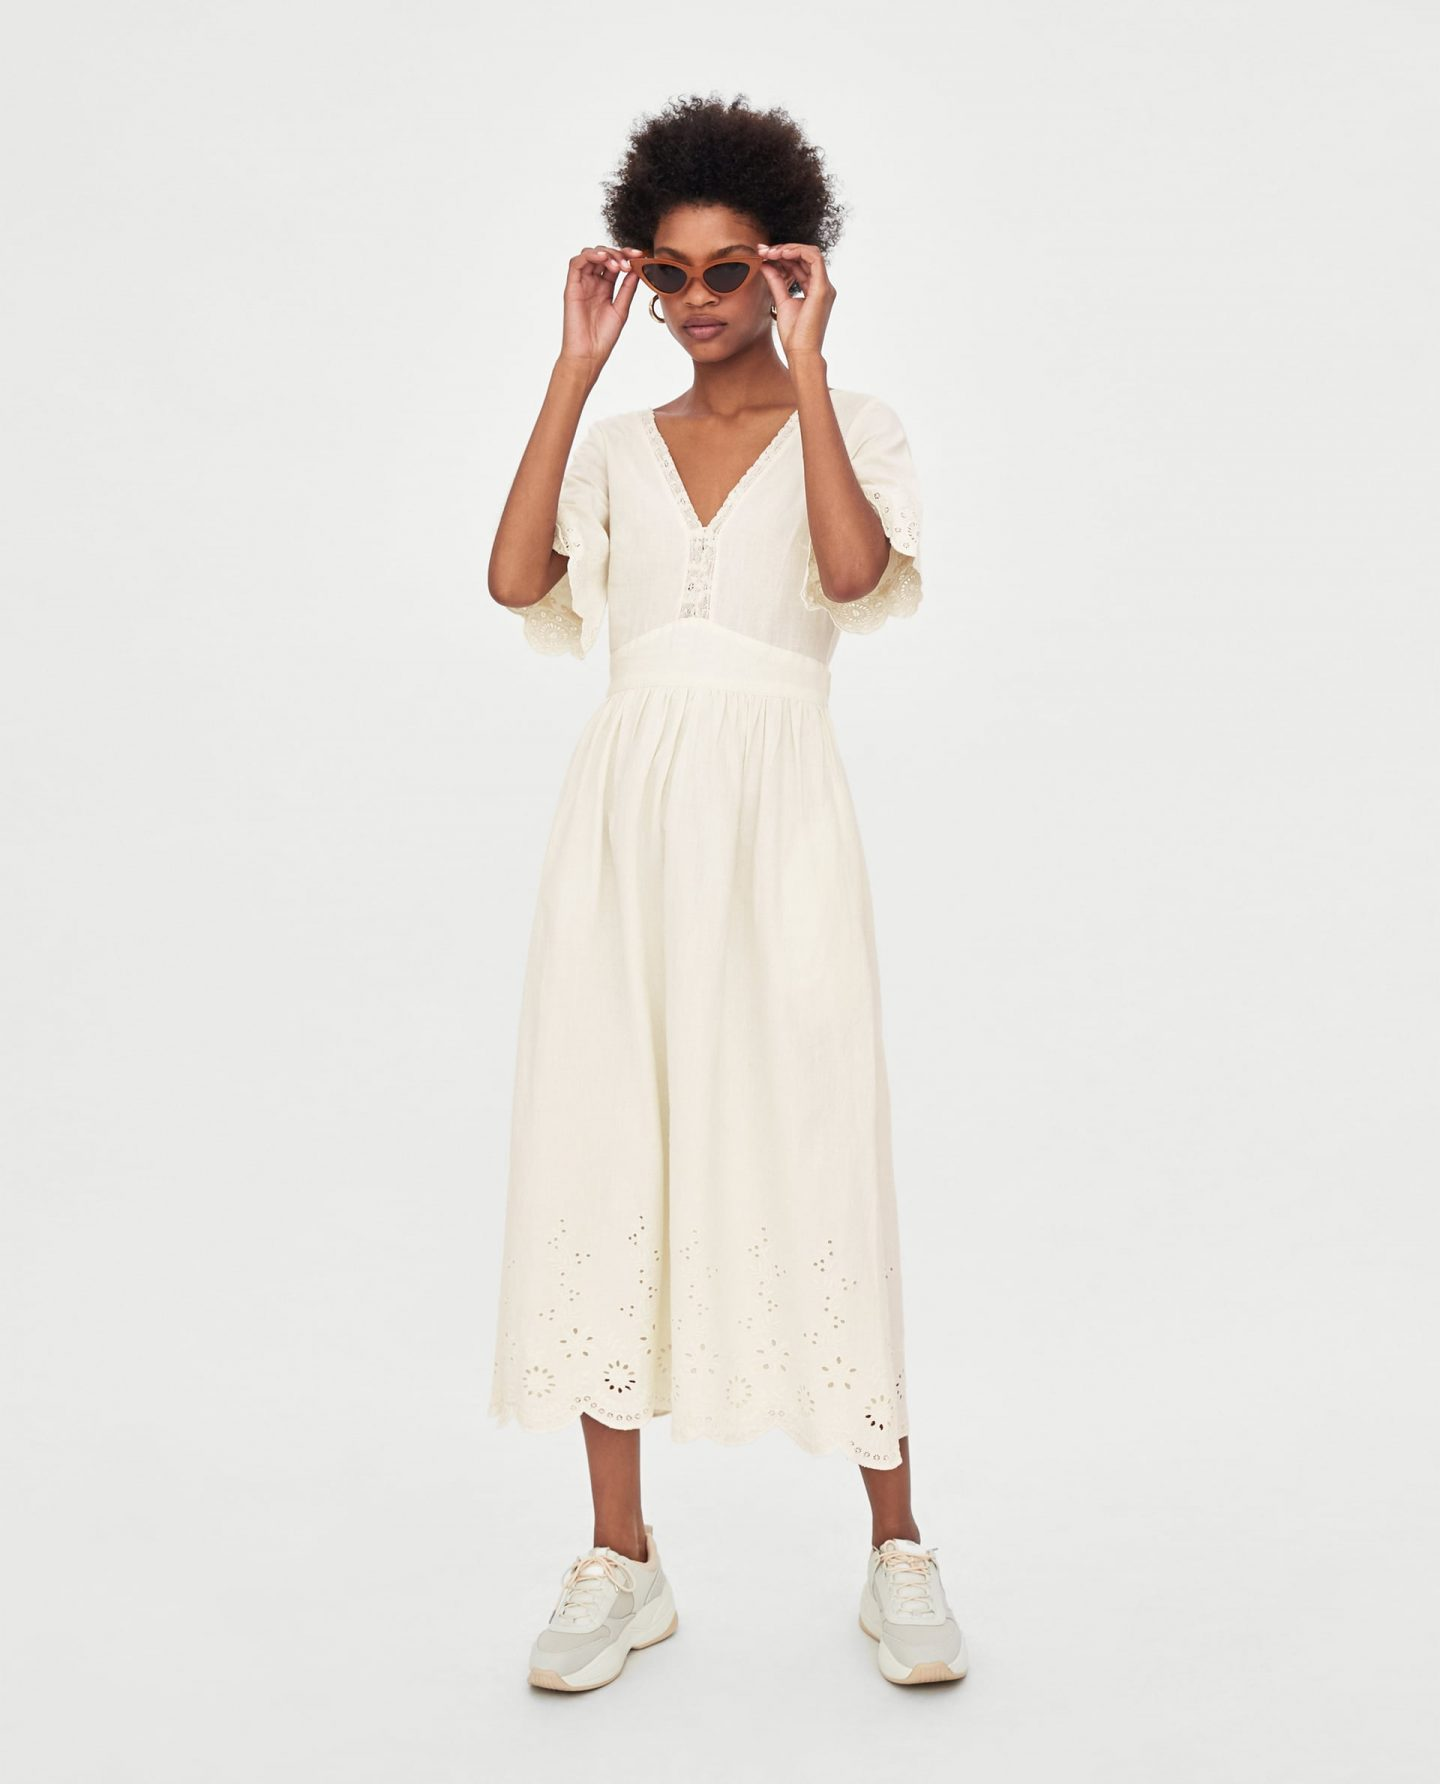 https://www.zara.com/ie/en/embroidered-midi-dress-p00881159.html?v1=6451099&v2=1080530